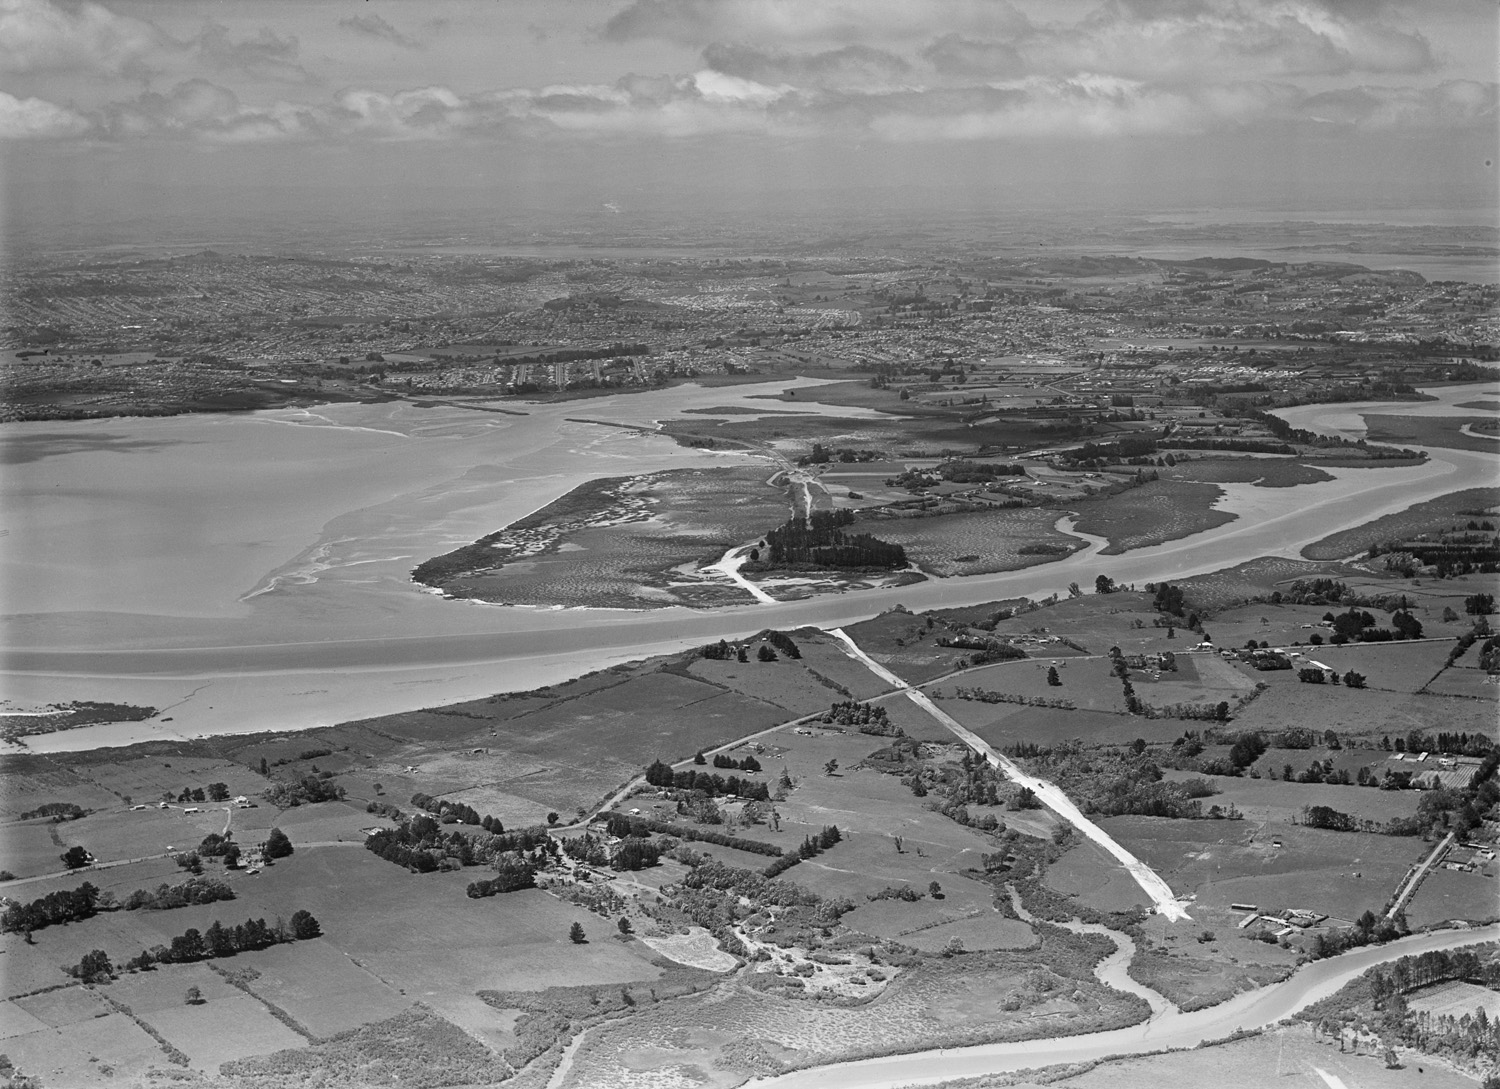 Aerial photograph showing the partitioning of North and South by the motorway, 9 November 1951. Whites Aviation Ltd, Alexander Turnbull Library, Wellington. (WA-29674-G )